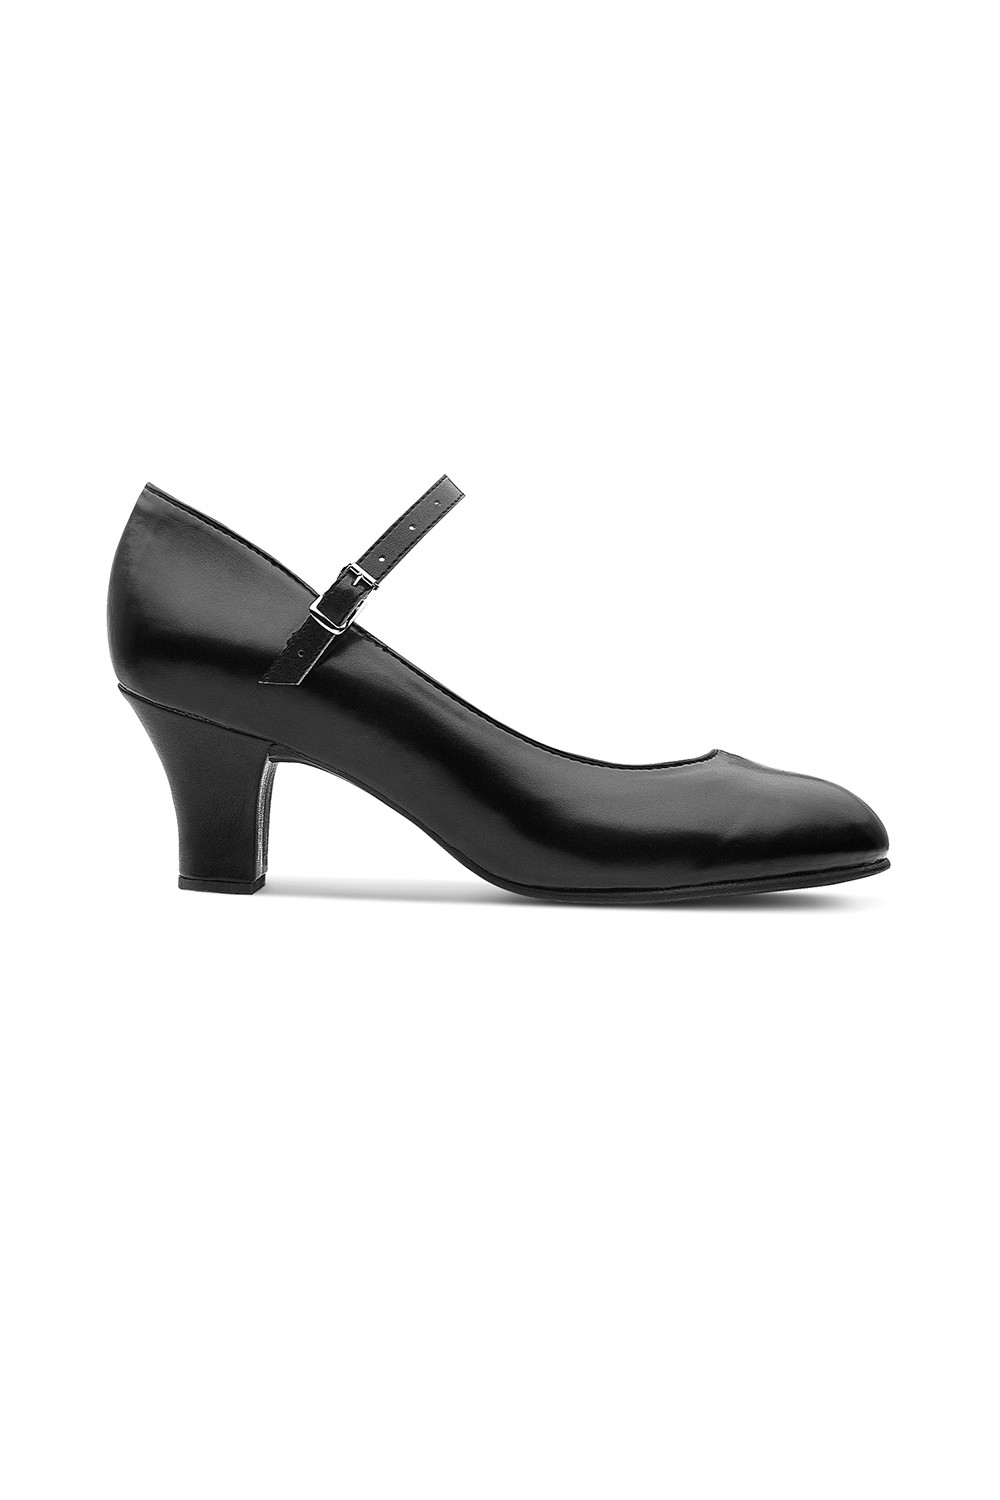 Dance Now Character Shoe Women's Character Shoes